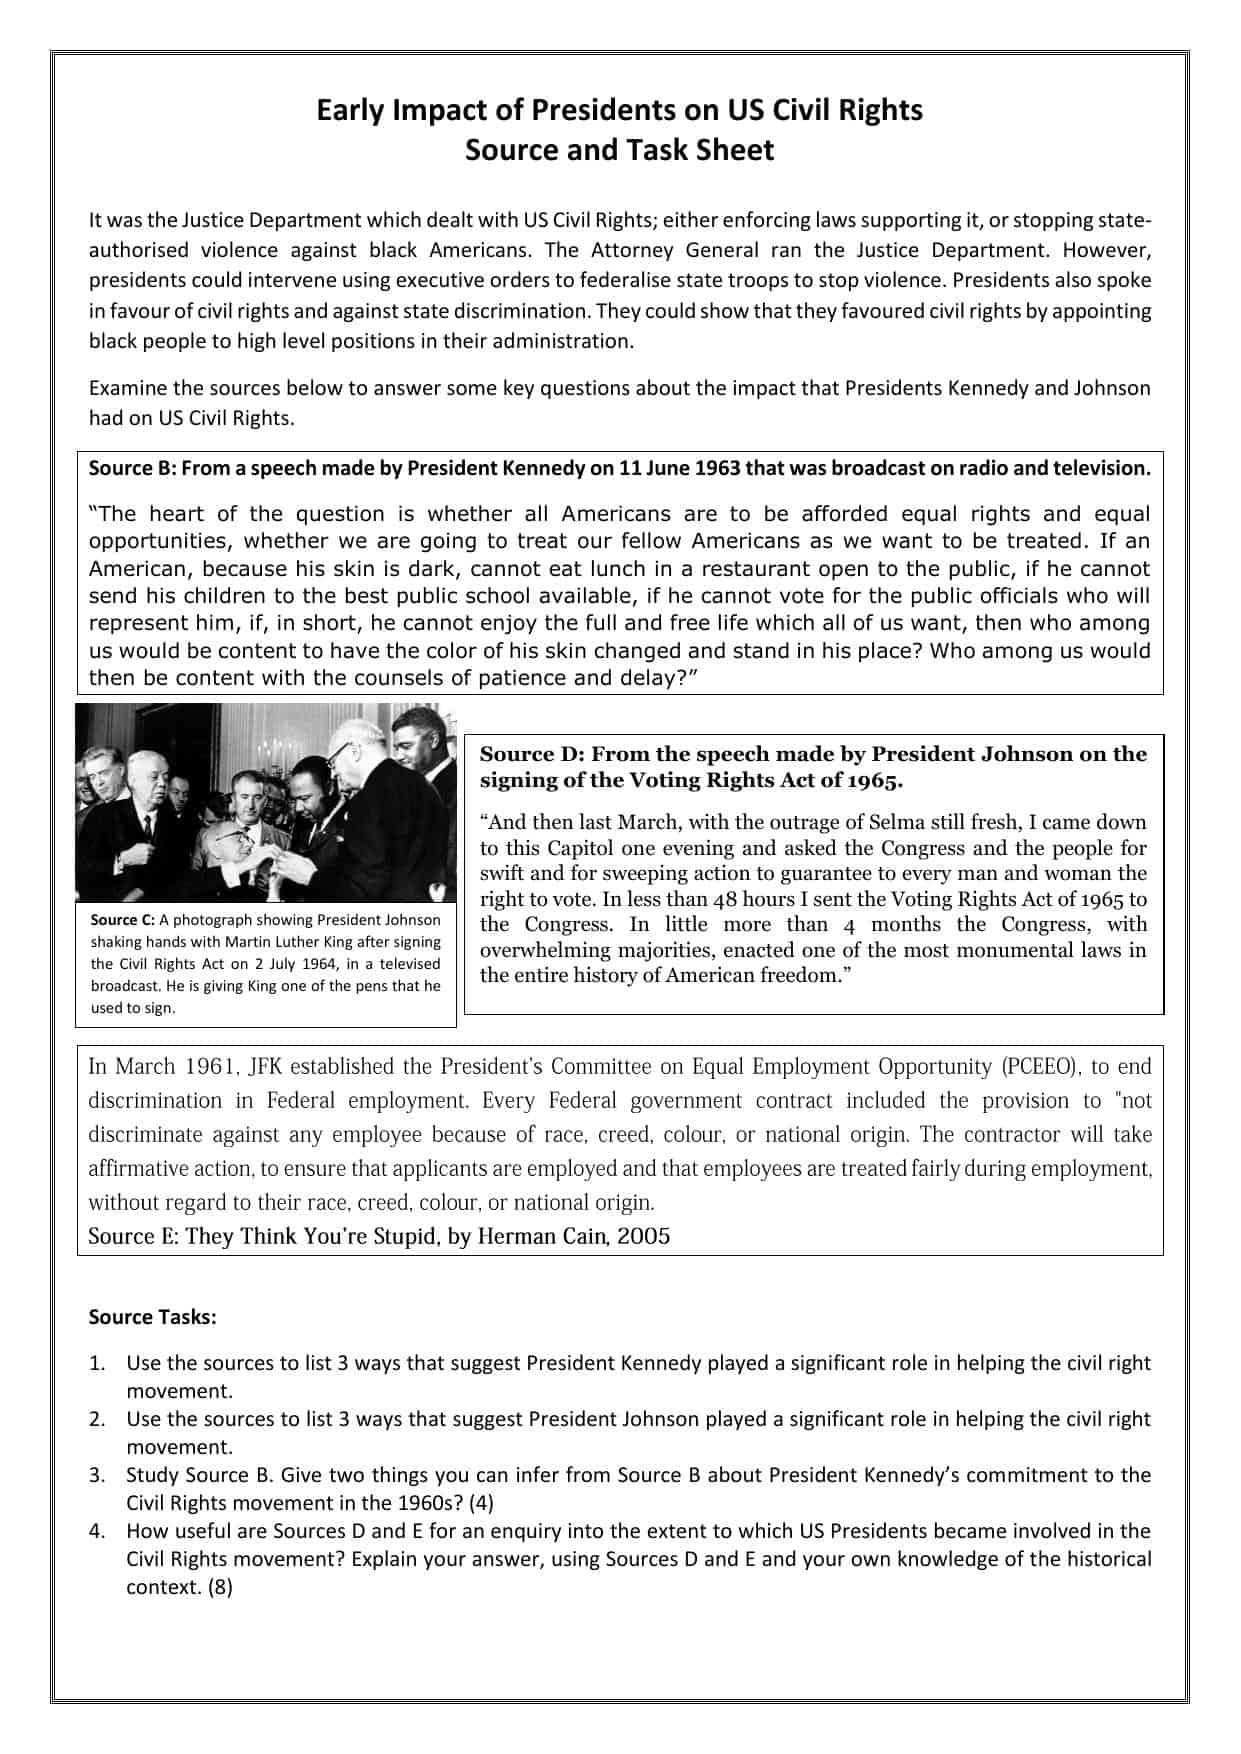 Us Civil Rights Edexcel Gcse Exam Source Questions